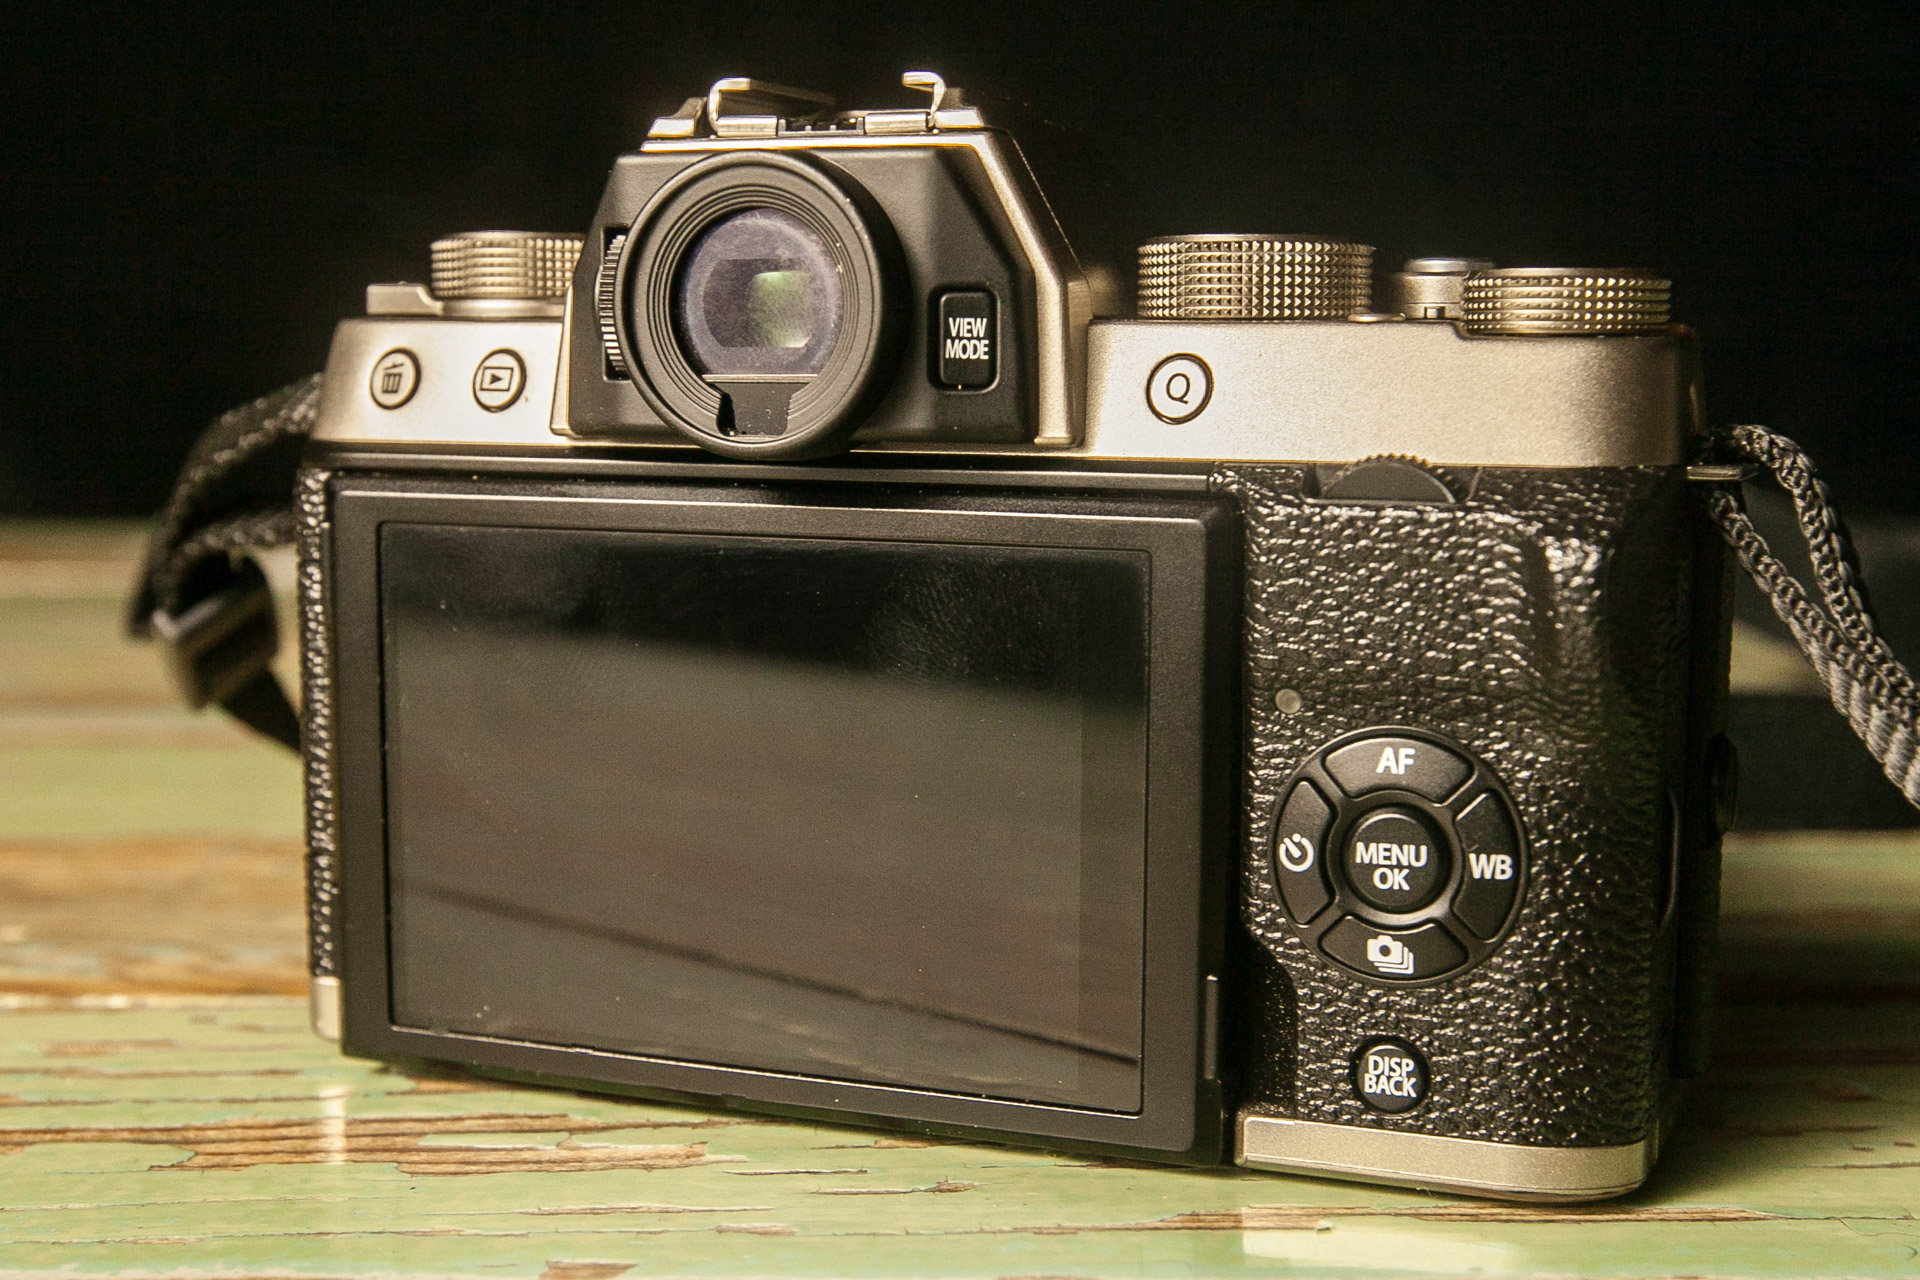 Image showing the back of the Fujifilm X-T100